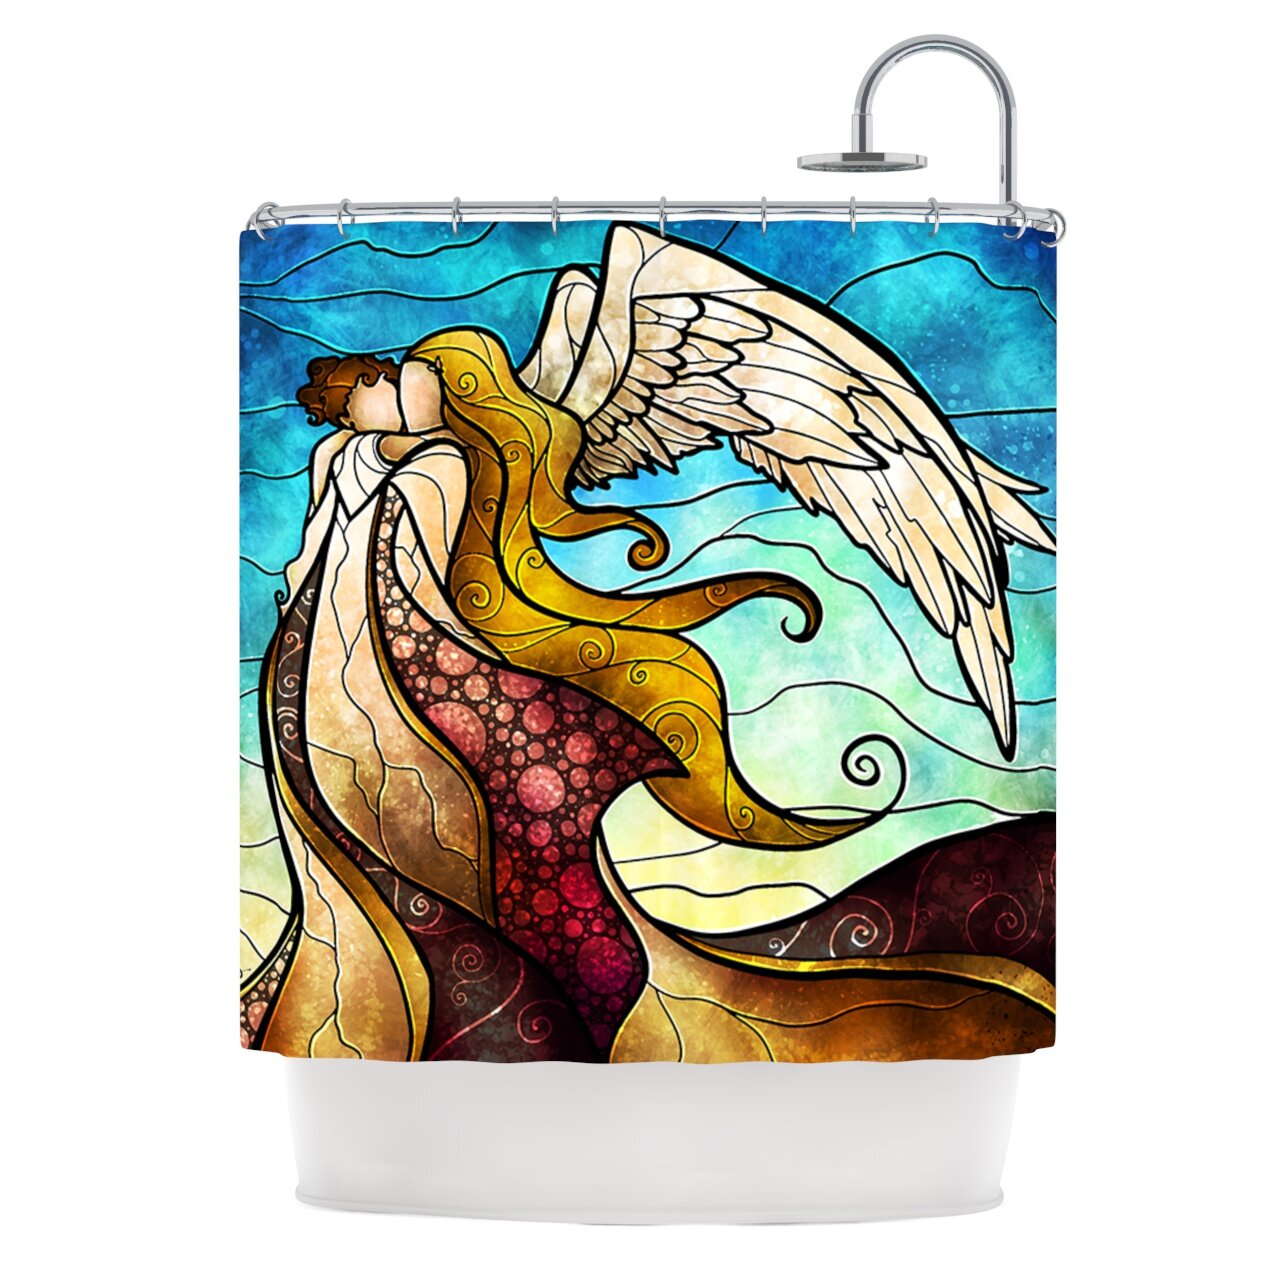 KESS InHouse In The Arms Of Angel Shower Curtain